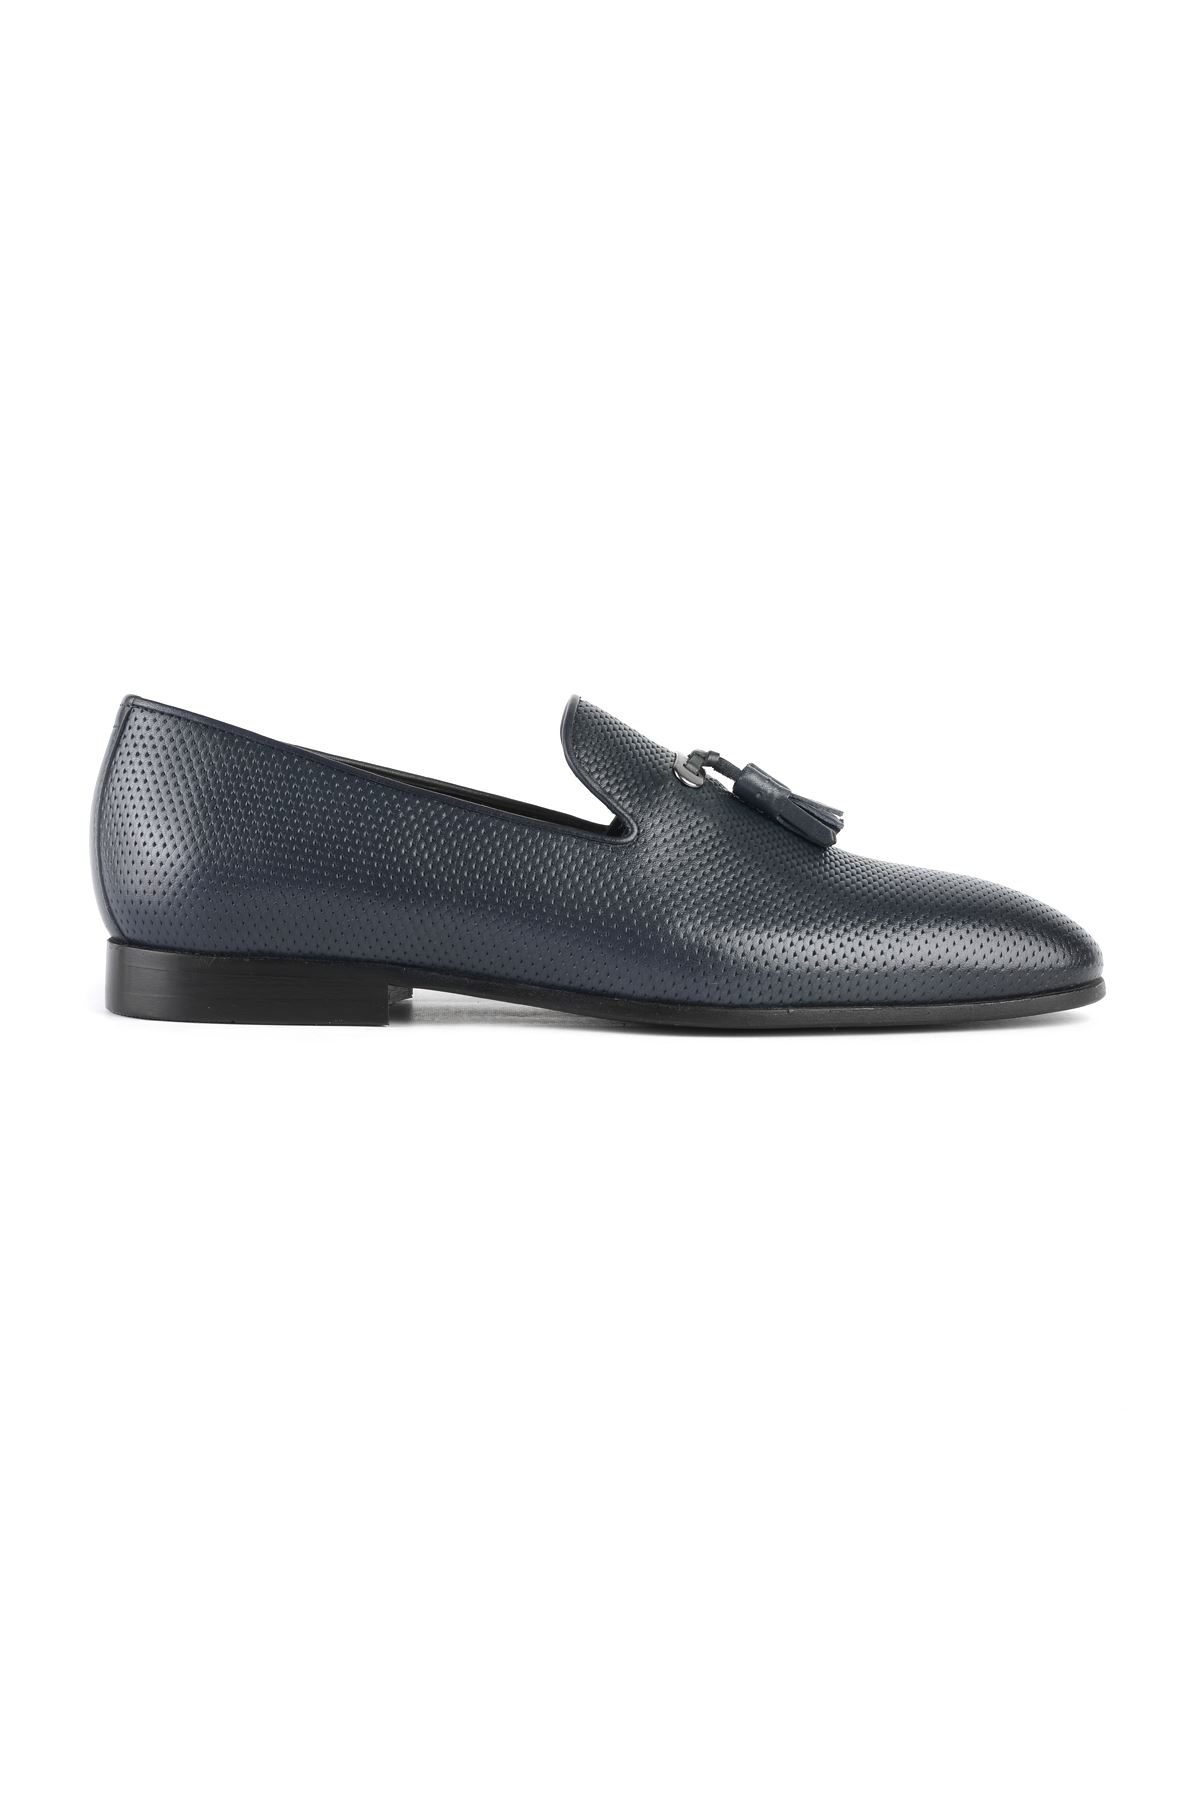 Libero 3324 Navy Blue Loafer Shoes